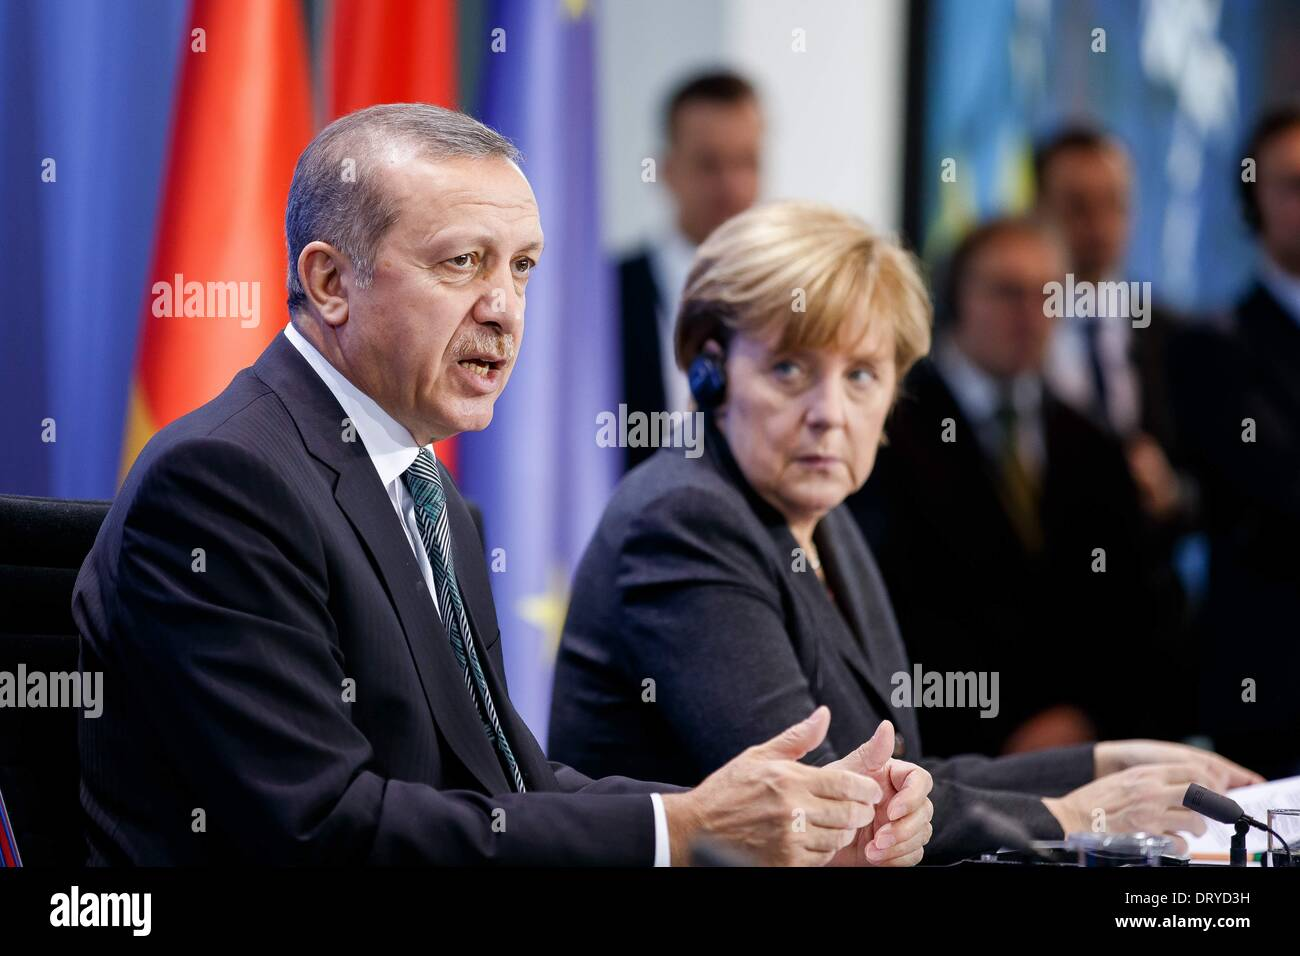 Berlin, Germany. Februar 04th, 2014. German Chancellor Angela Merkel welcomes the Turkish Prime Minister Recep Tayyip Erdogan to exchange views at the Federal Chancellery. The focus of the common conversation is the bilateral relations and current international issues, like Syria. After the meeting, they give a joint press conference at the Chancellery in Berlin. 4th Feb, 2014. / Picture: Türkischer Ministerpräsident Recep Erdogan and Angela Merkel (CDU), German Chancellor. © Reynaldo Paganelli/NurPhoto/ZUMAPRESS.com/Alamy Live News - Stock Image